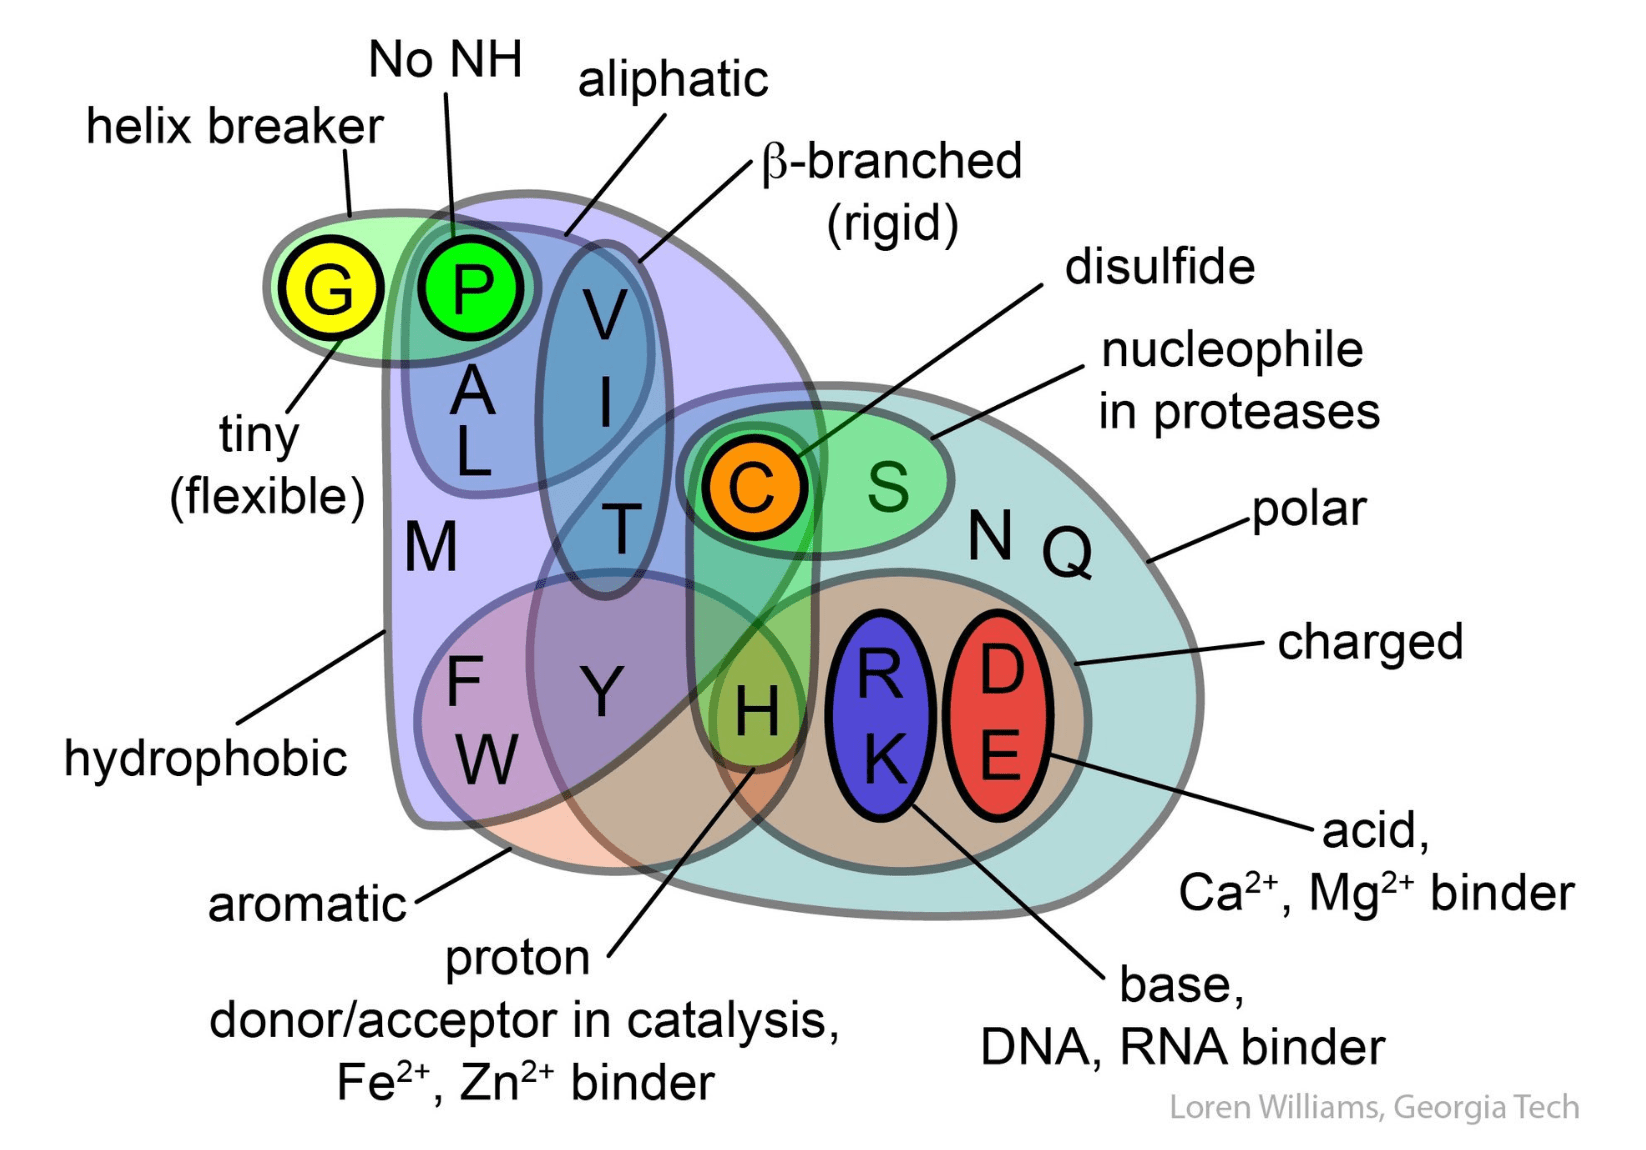 venn diagram comparing dna and rna craftsman chain garage door opener amino acids schematic library showing the properties of 20 created by